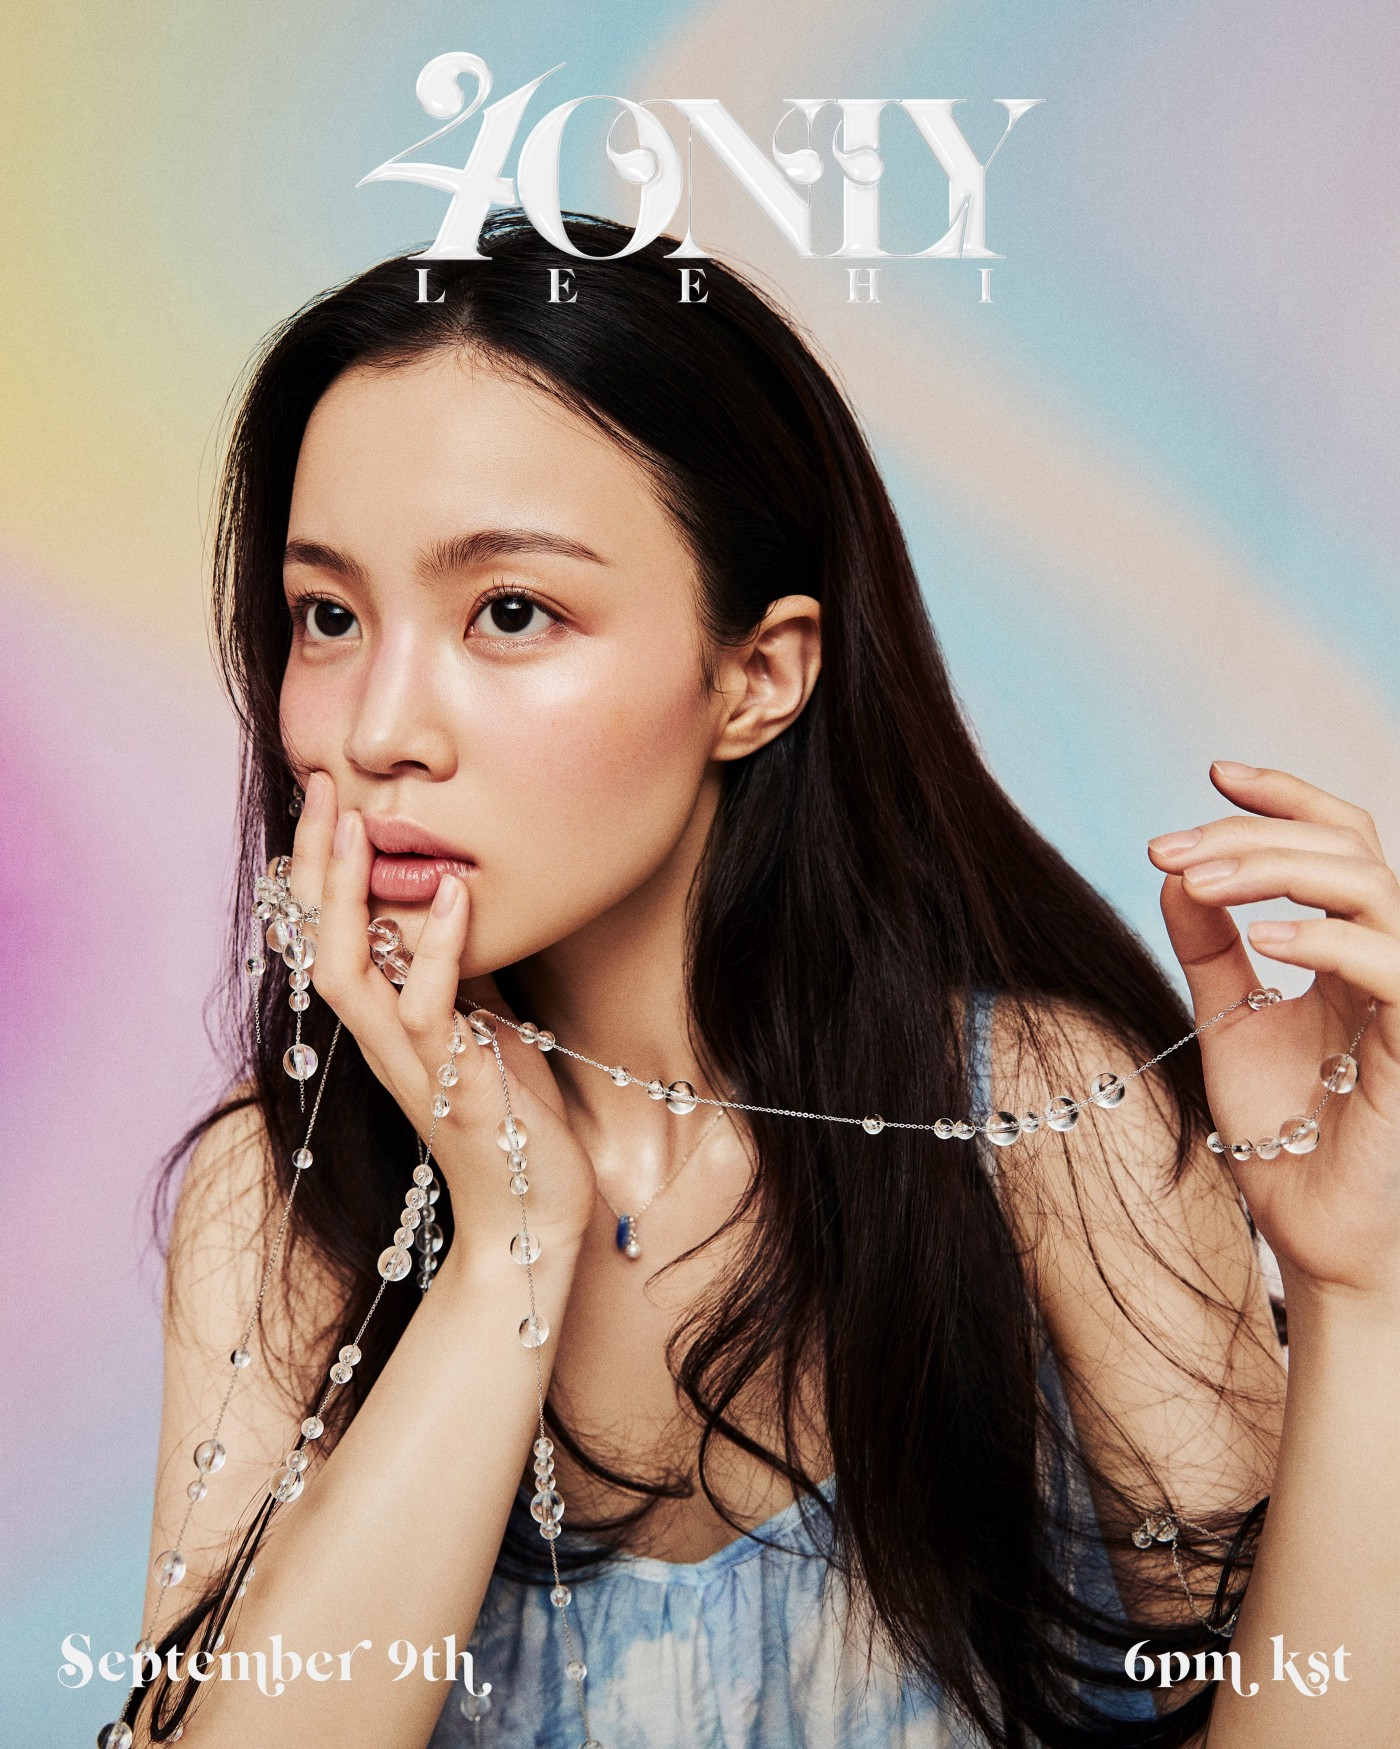 LeeHi's '4 ONLY' Heralds a Welcome Return to Music for the Expressive Singer